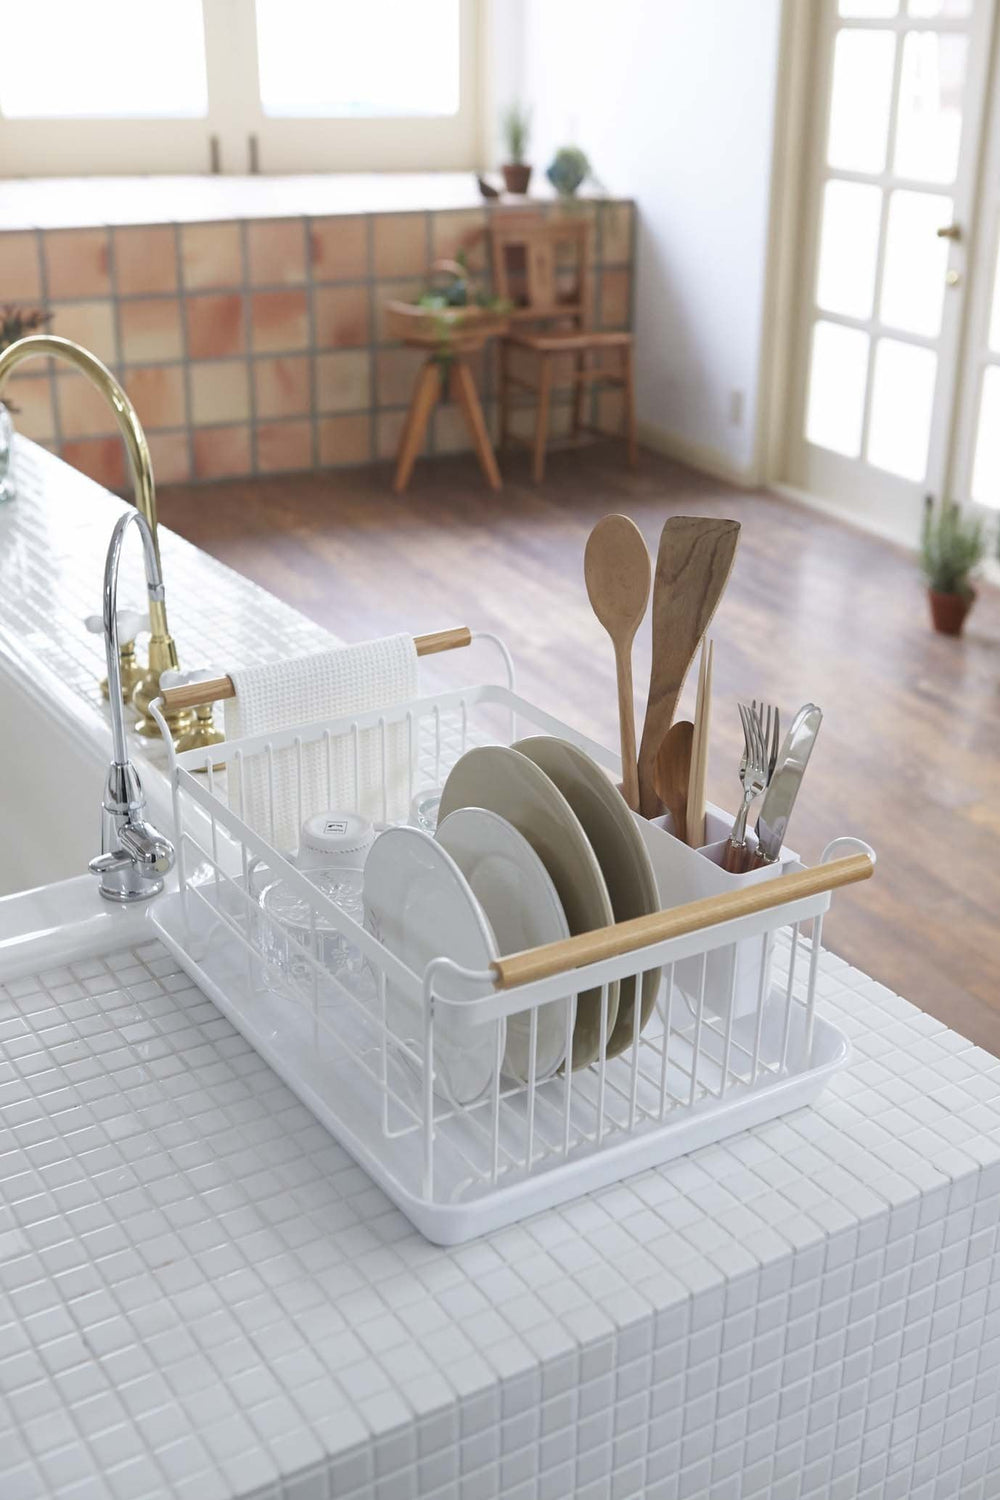 Yamazaki's dish rack styled after a basket with handles sitting next to sink on a tile countertop